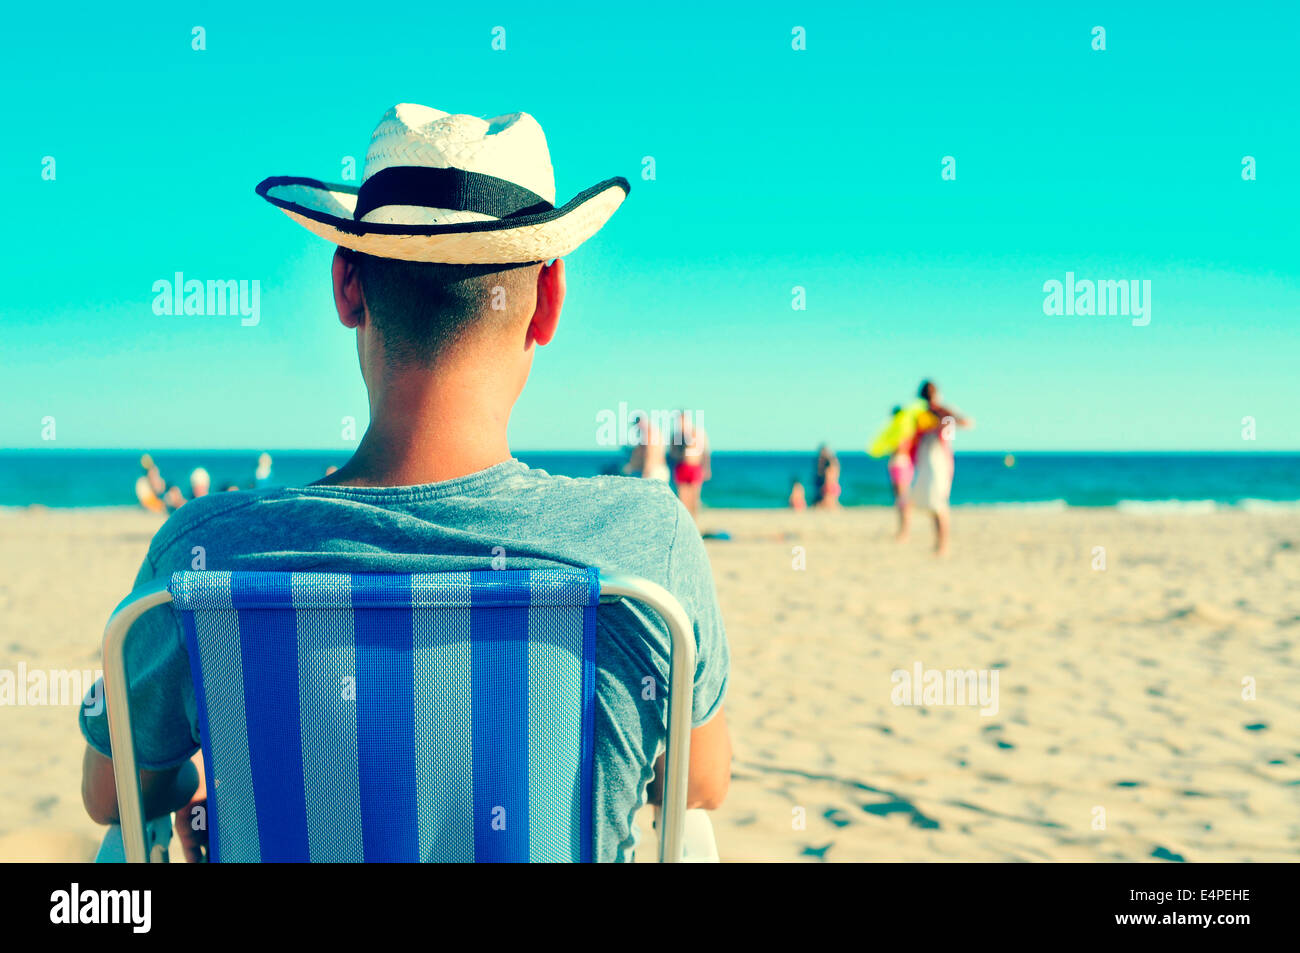 a young man with a straw hat relaxing on the beach - Stock Image